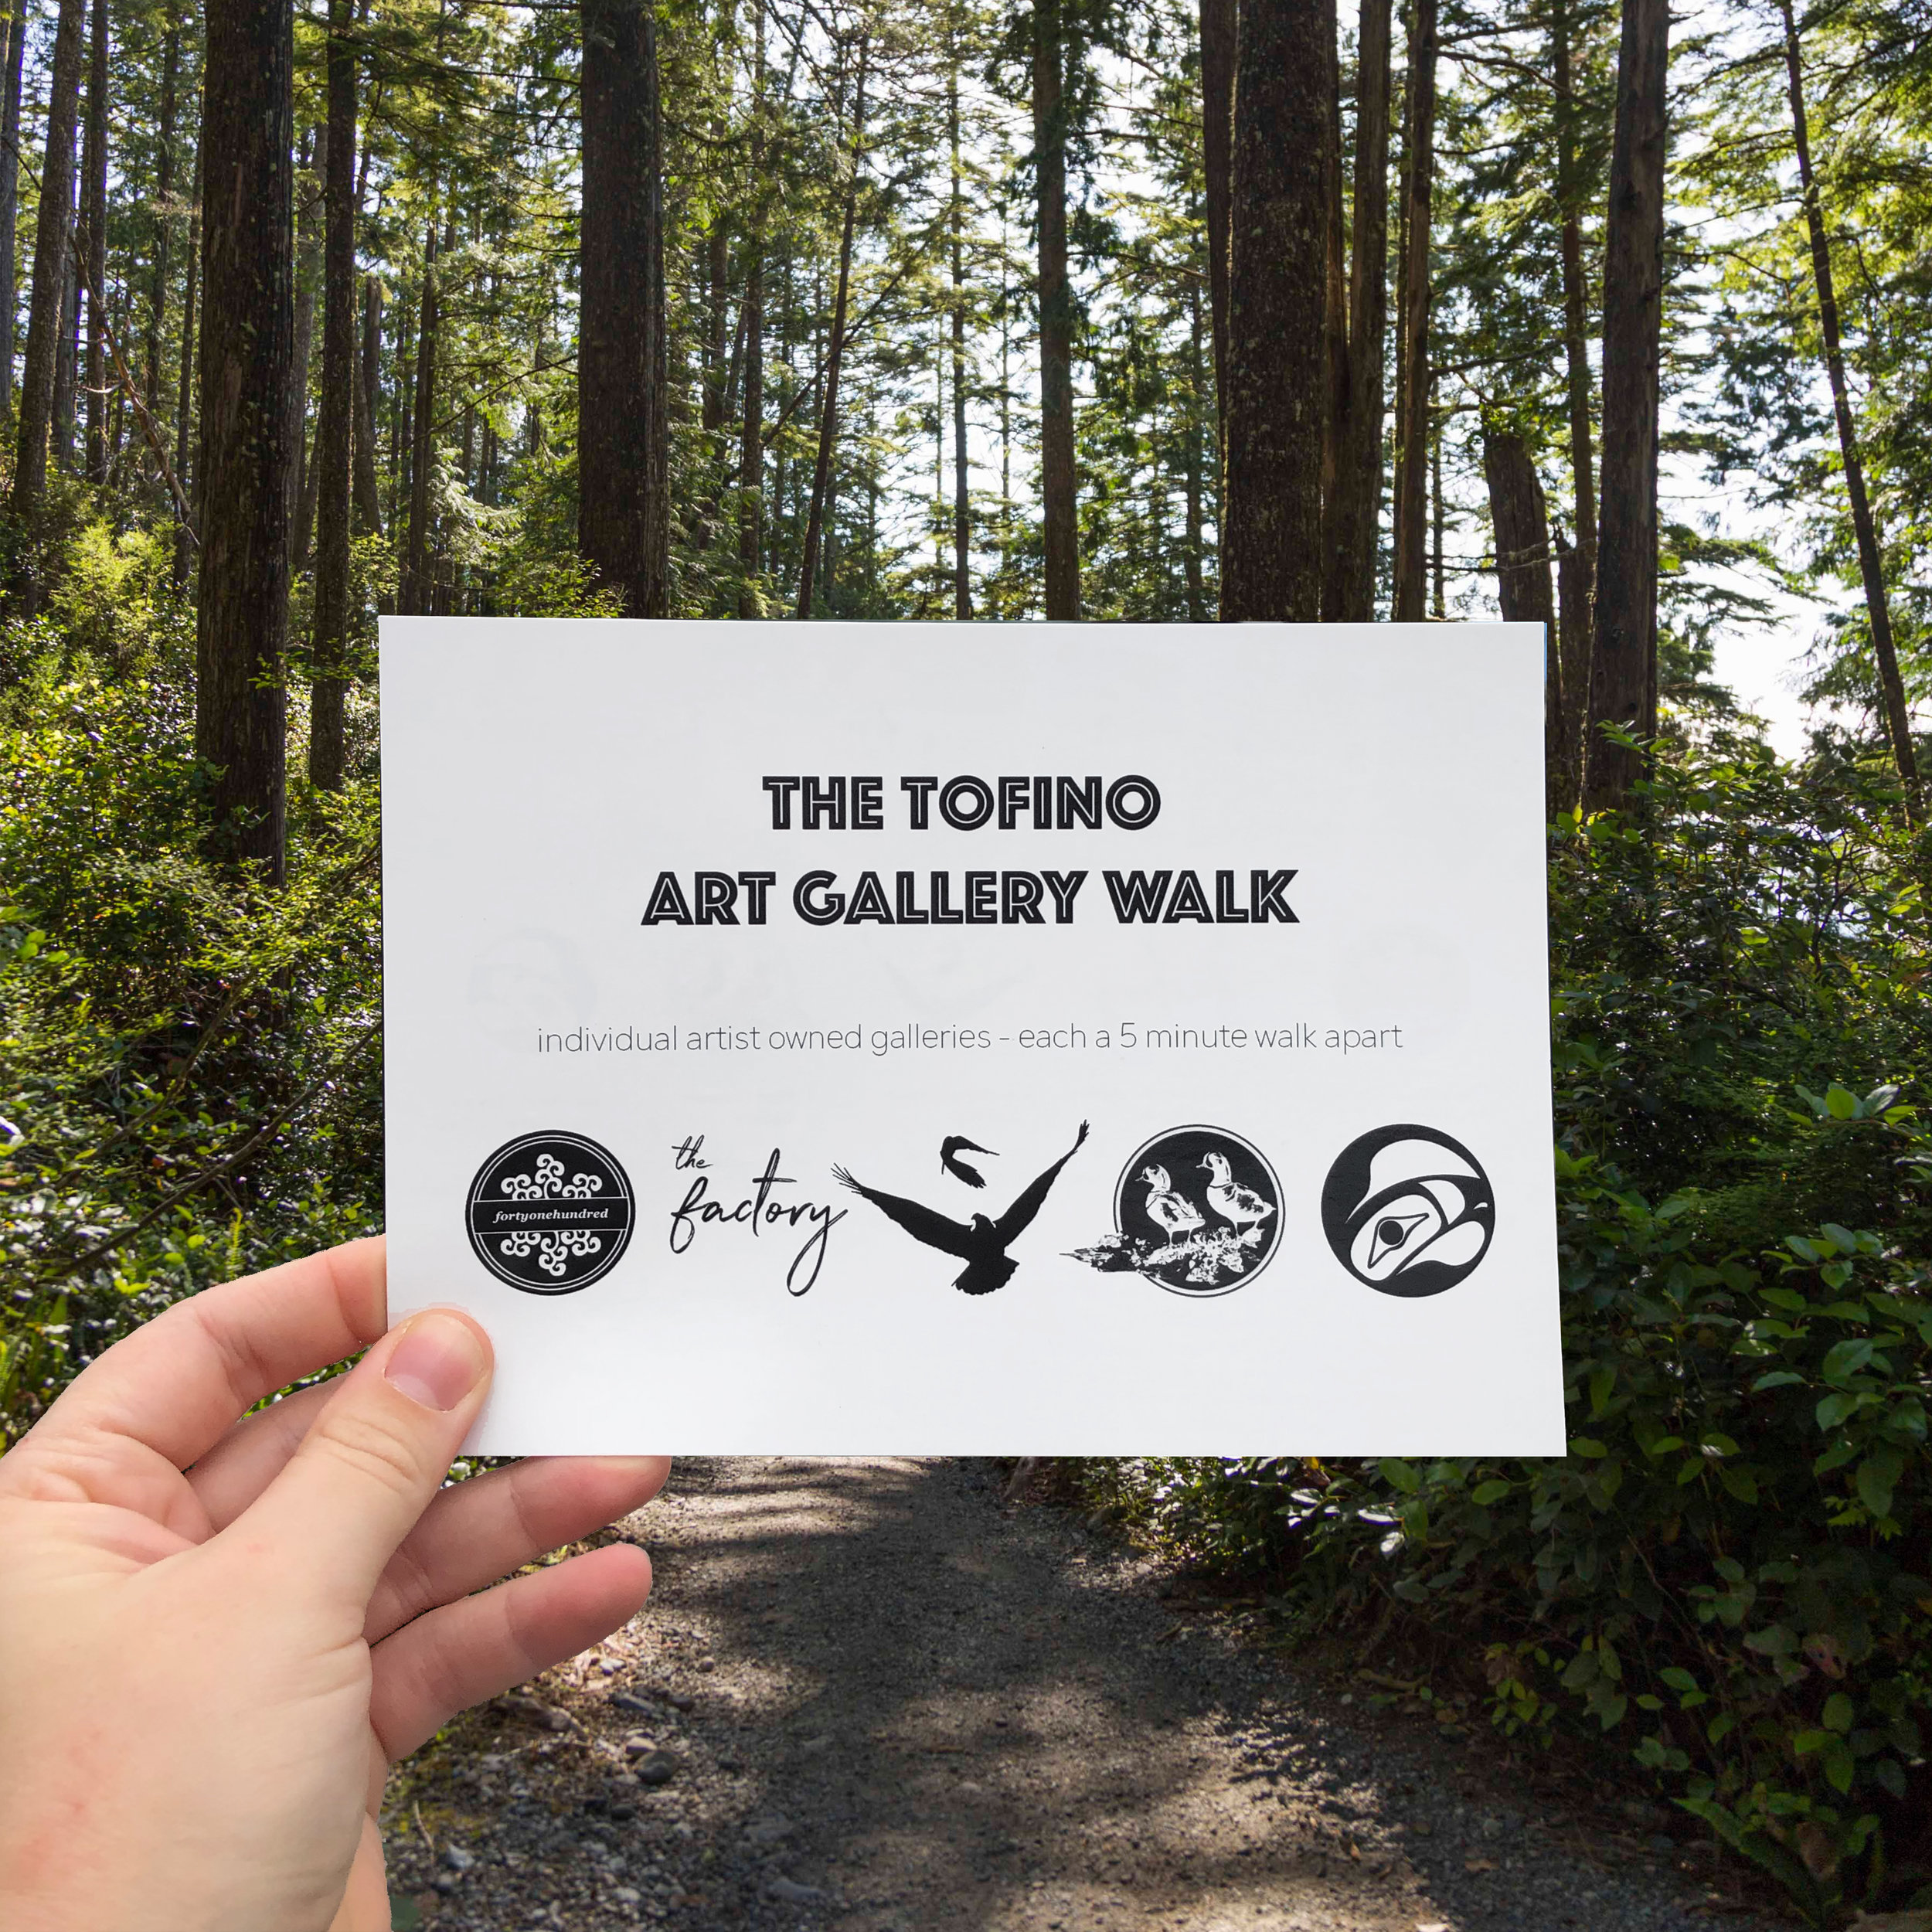 The-Tofino-Art-Gallery-Walk-BC-Canada-Lizzie-Snow-fortyonehundred-Mandalas-The-Factory-Kyler-Vos-Market-Canvas-Leather-Lisa-Fletcher-Jewellery-Jeremy-Koreski-Photography-Mark-Hobson-Paintings-Roy-Henry-Vickers-Limited-Edition-Prints-Art-Artists-British-Colombia